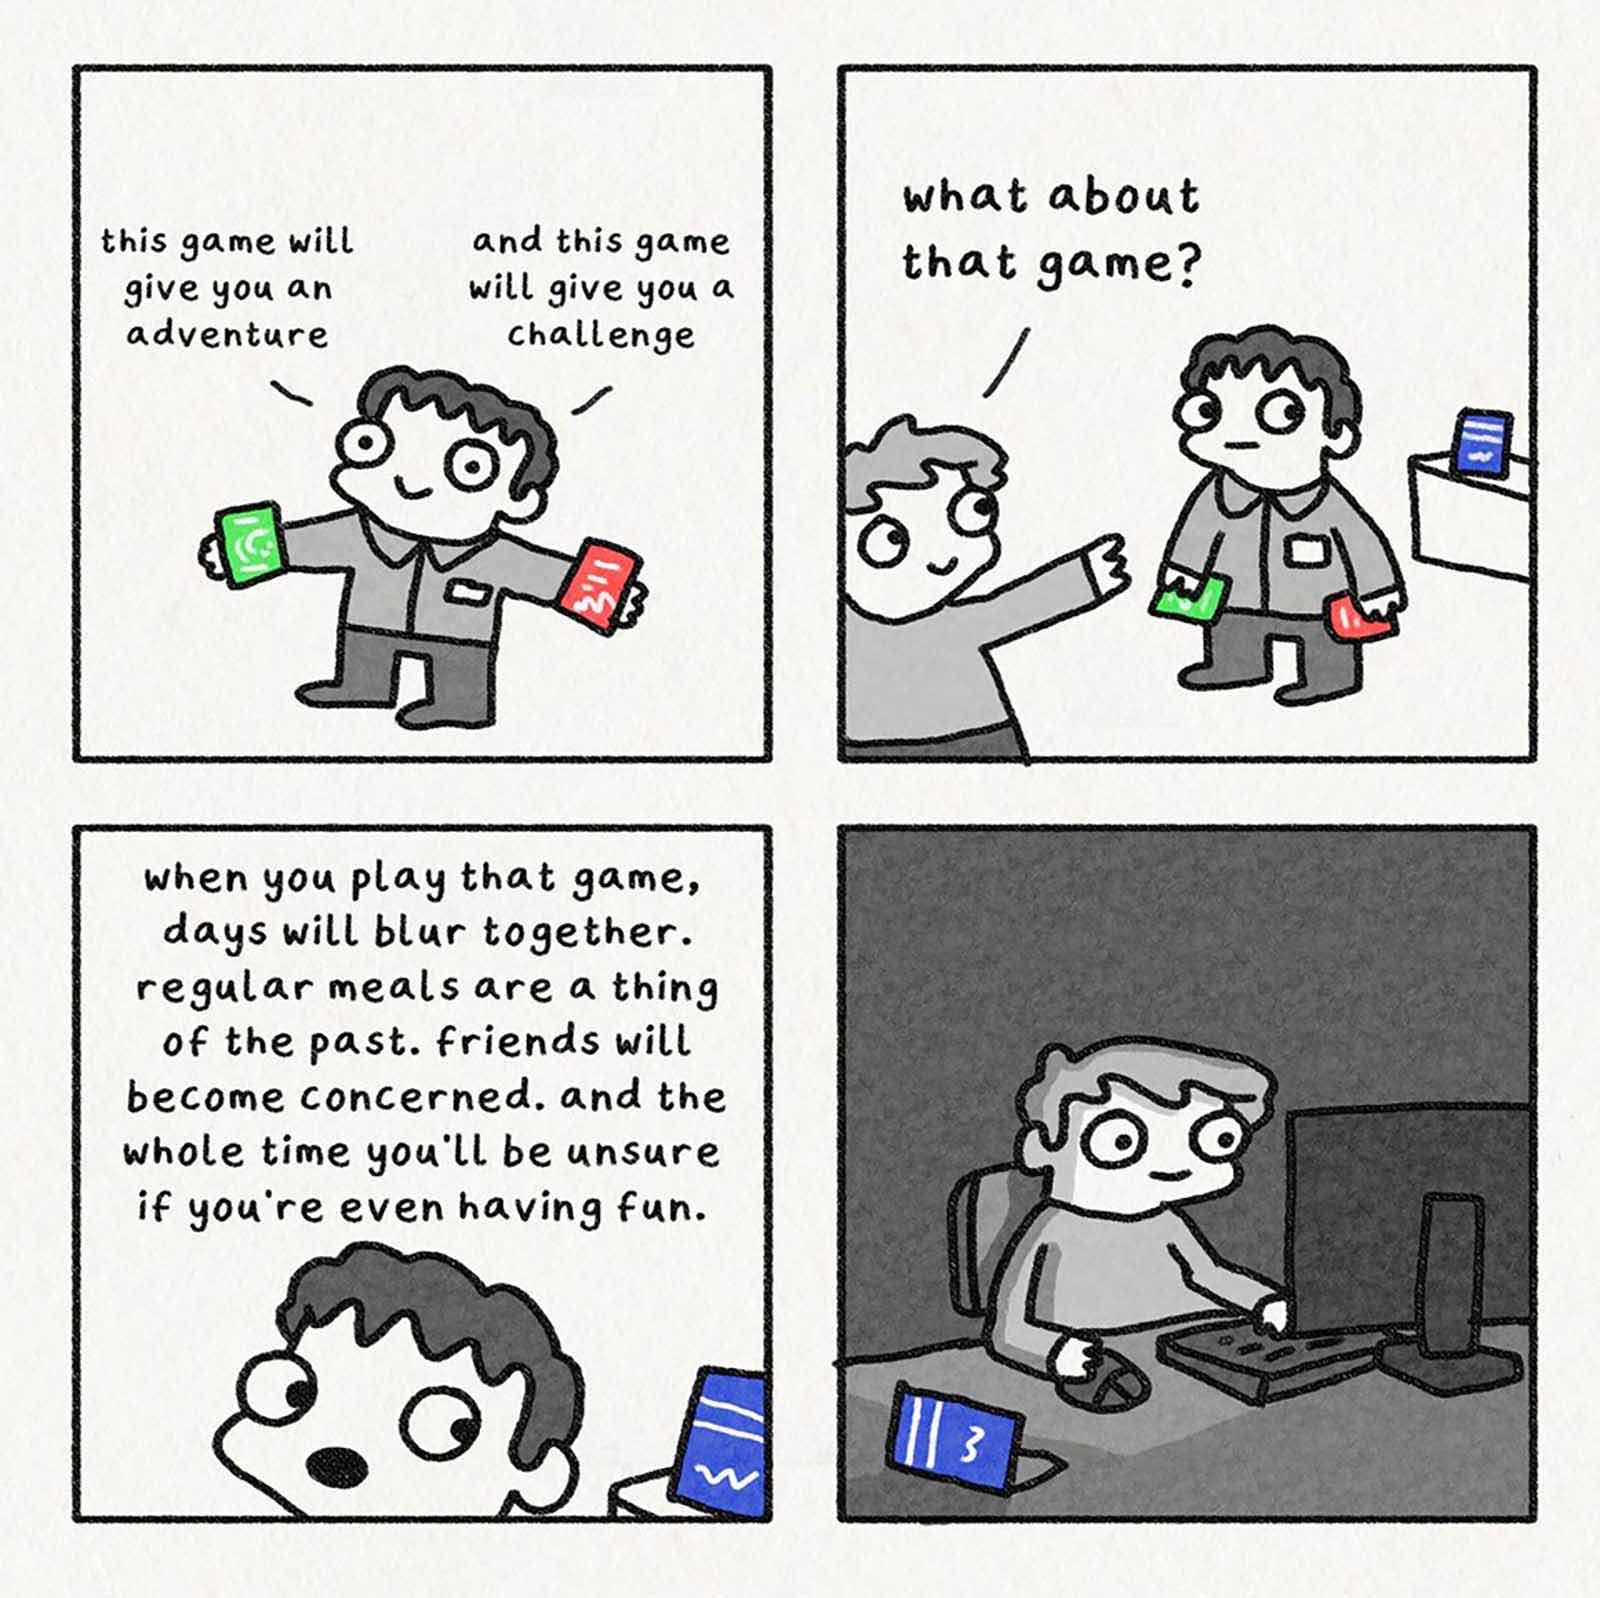 Gaming Memes All The Best Memes Every Gamer Has To Know